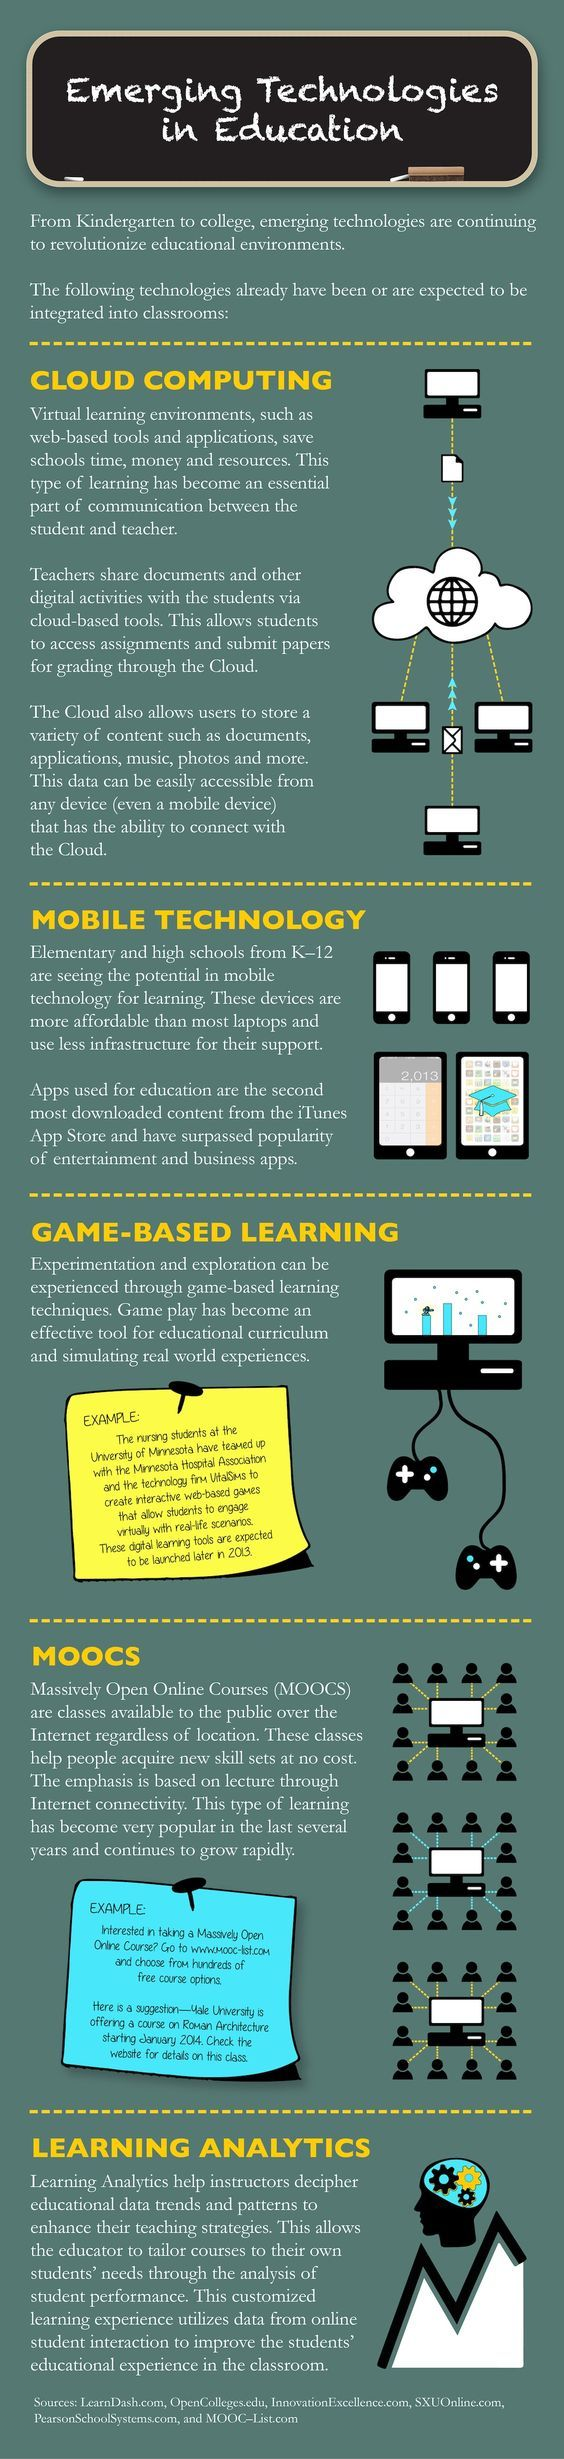 15 best educational technology infographics images on pinterest top 5 emerging educational technologies infographic fandeluxe Choice Image